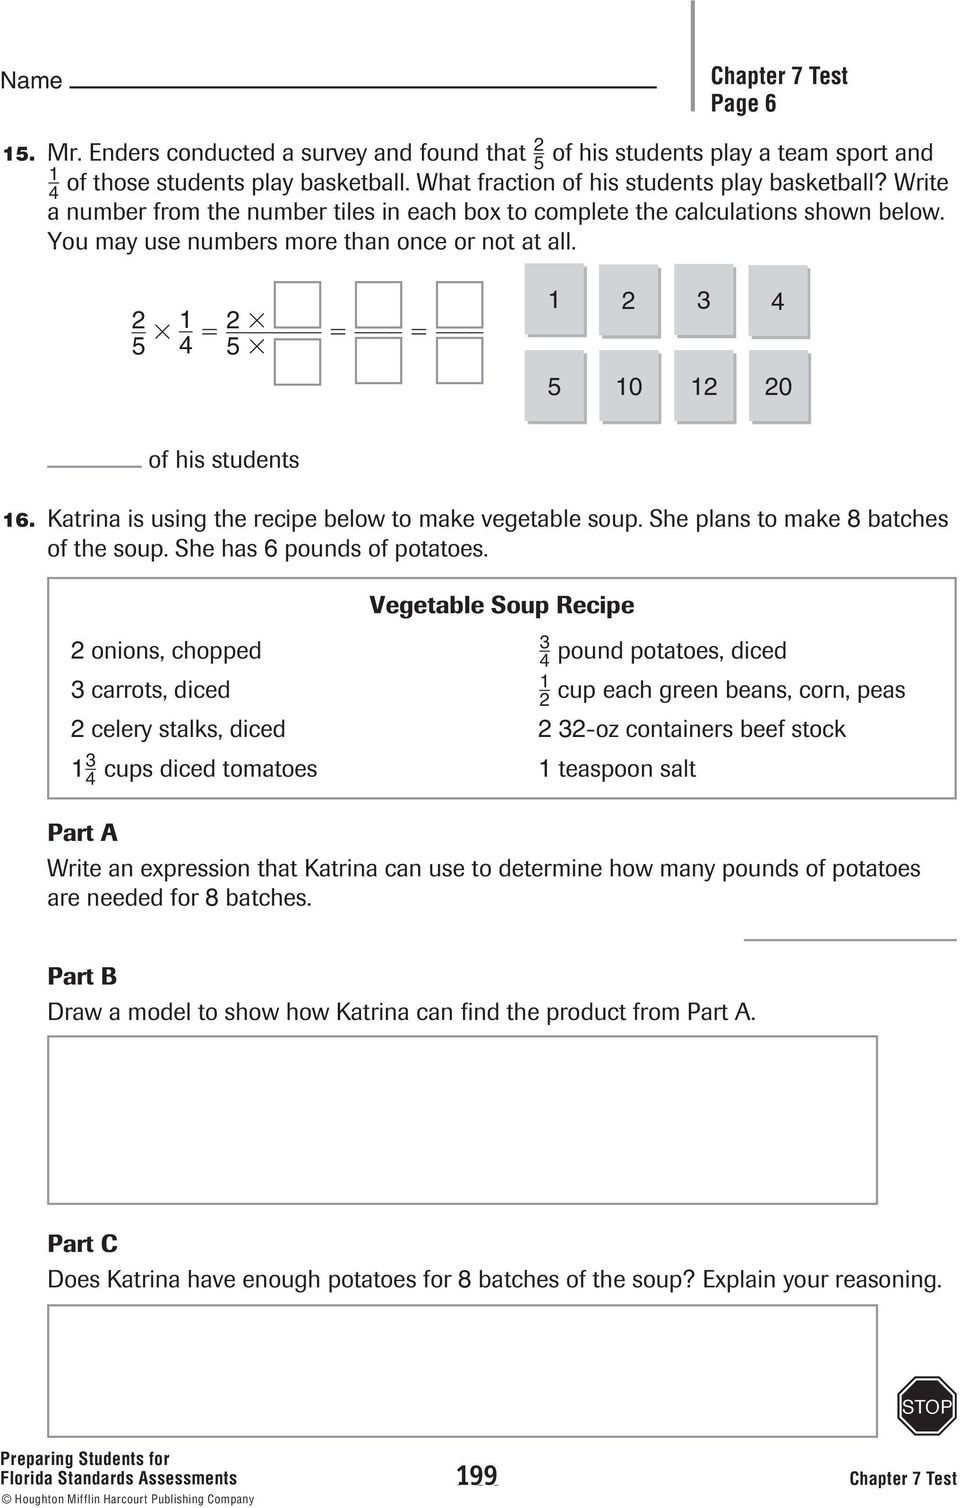 Katrina is using the recipe below to make vegetable soup. She plans to make 8 batches of the soup. She has 6 pounds of potatoes.